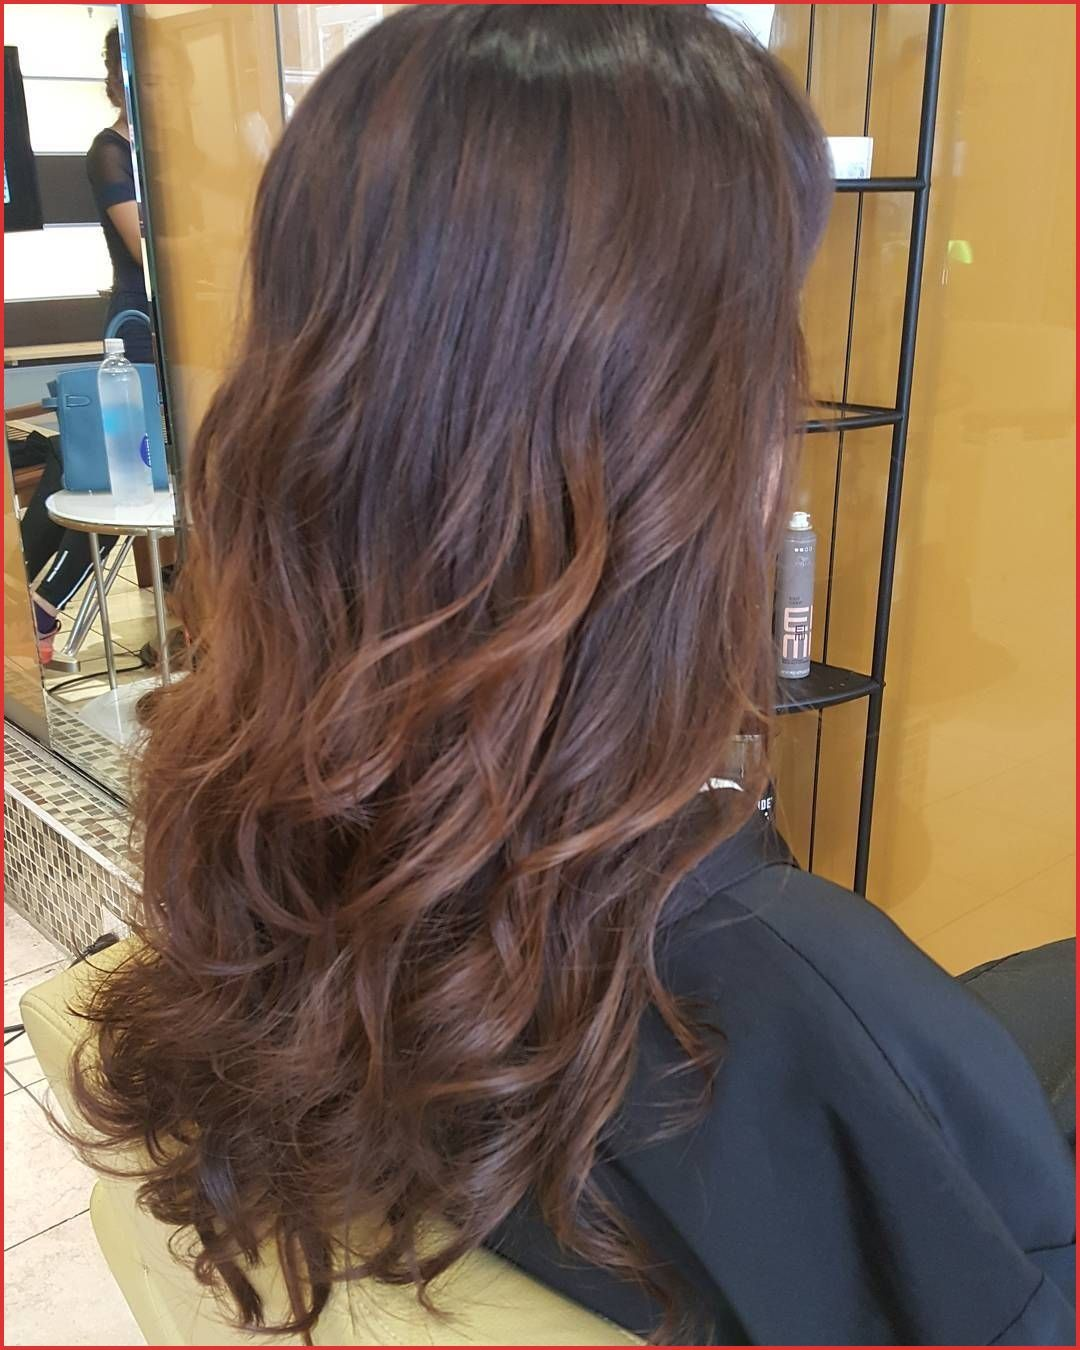 Chinese Hair Salon 142347 30 Stunning Digital Perm Hairstyles Perfect Waves With A Digi Per Permed Hairstyles Digital Perm Body Wave Perm